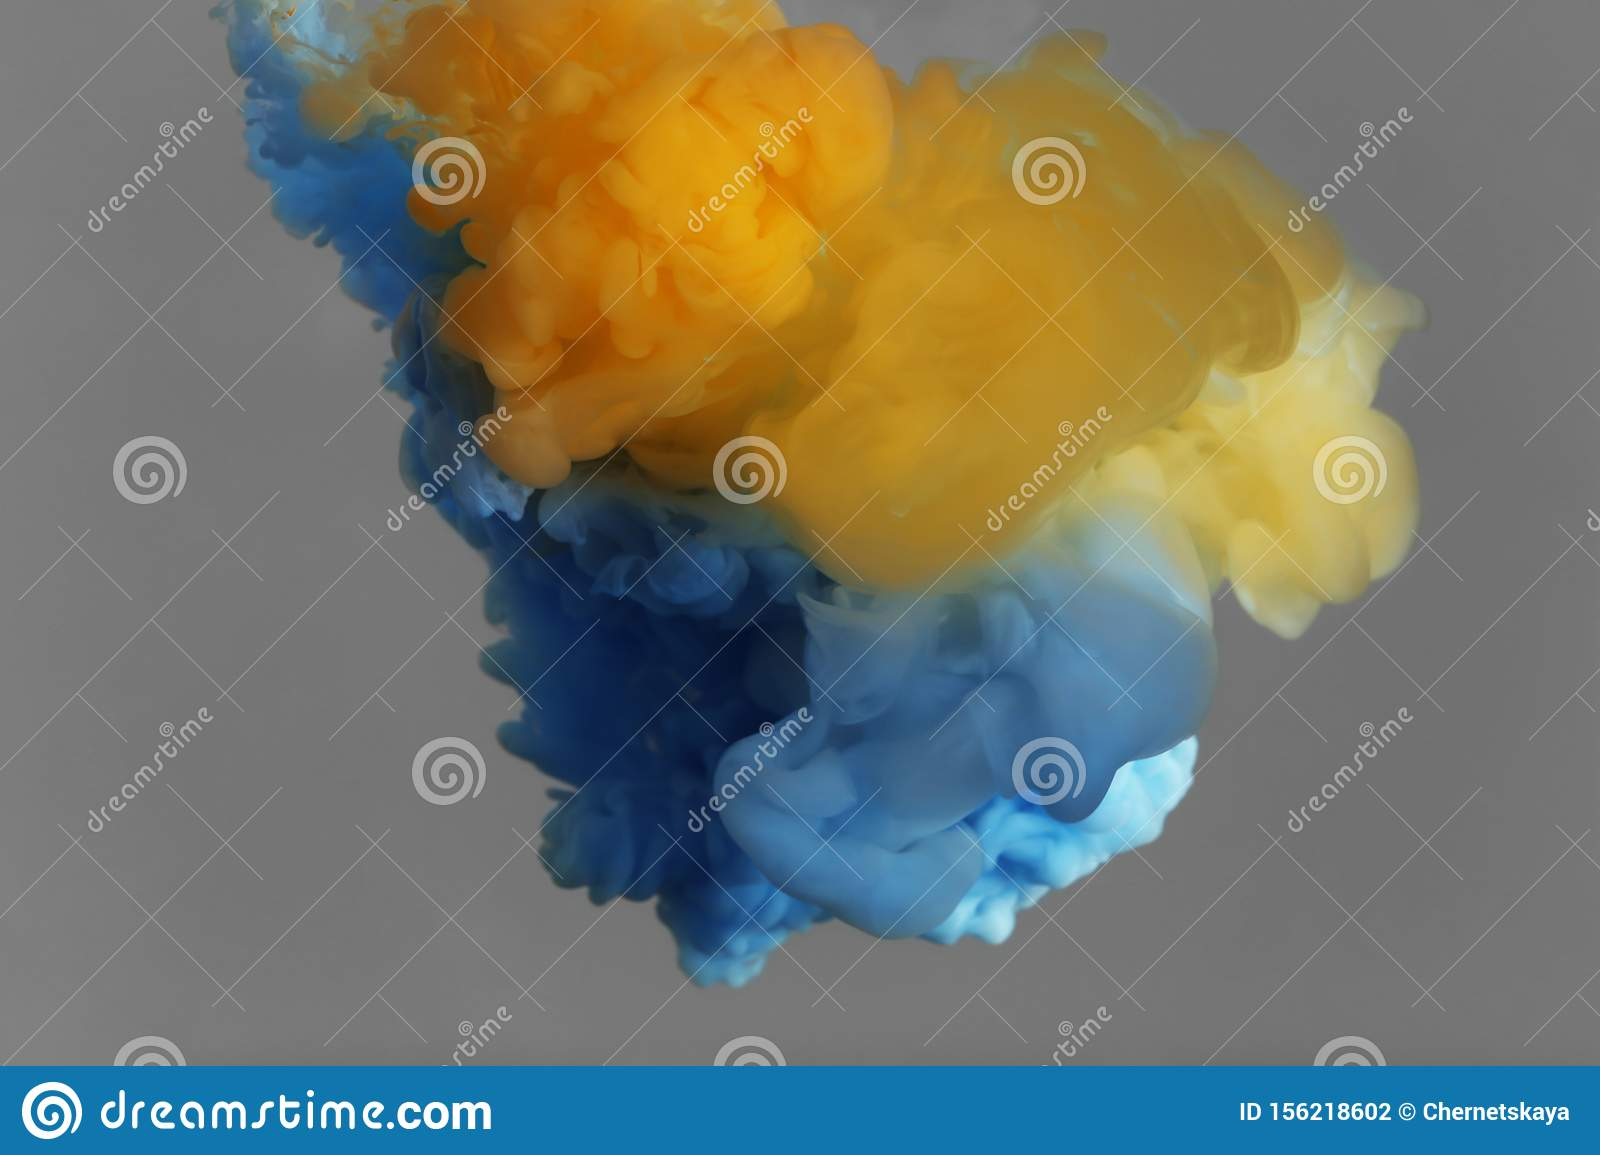 Splash of yellow and light blue on grey background